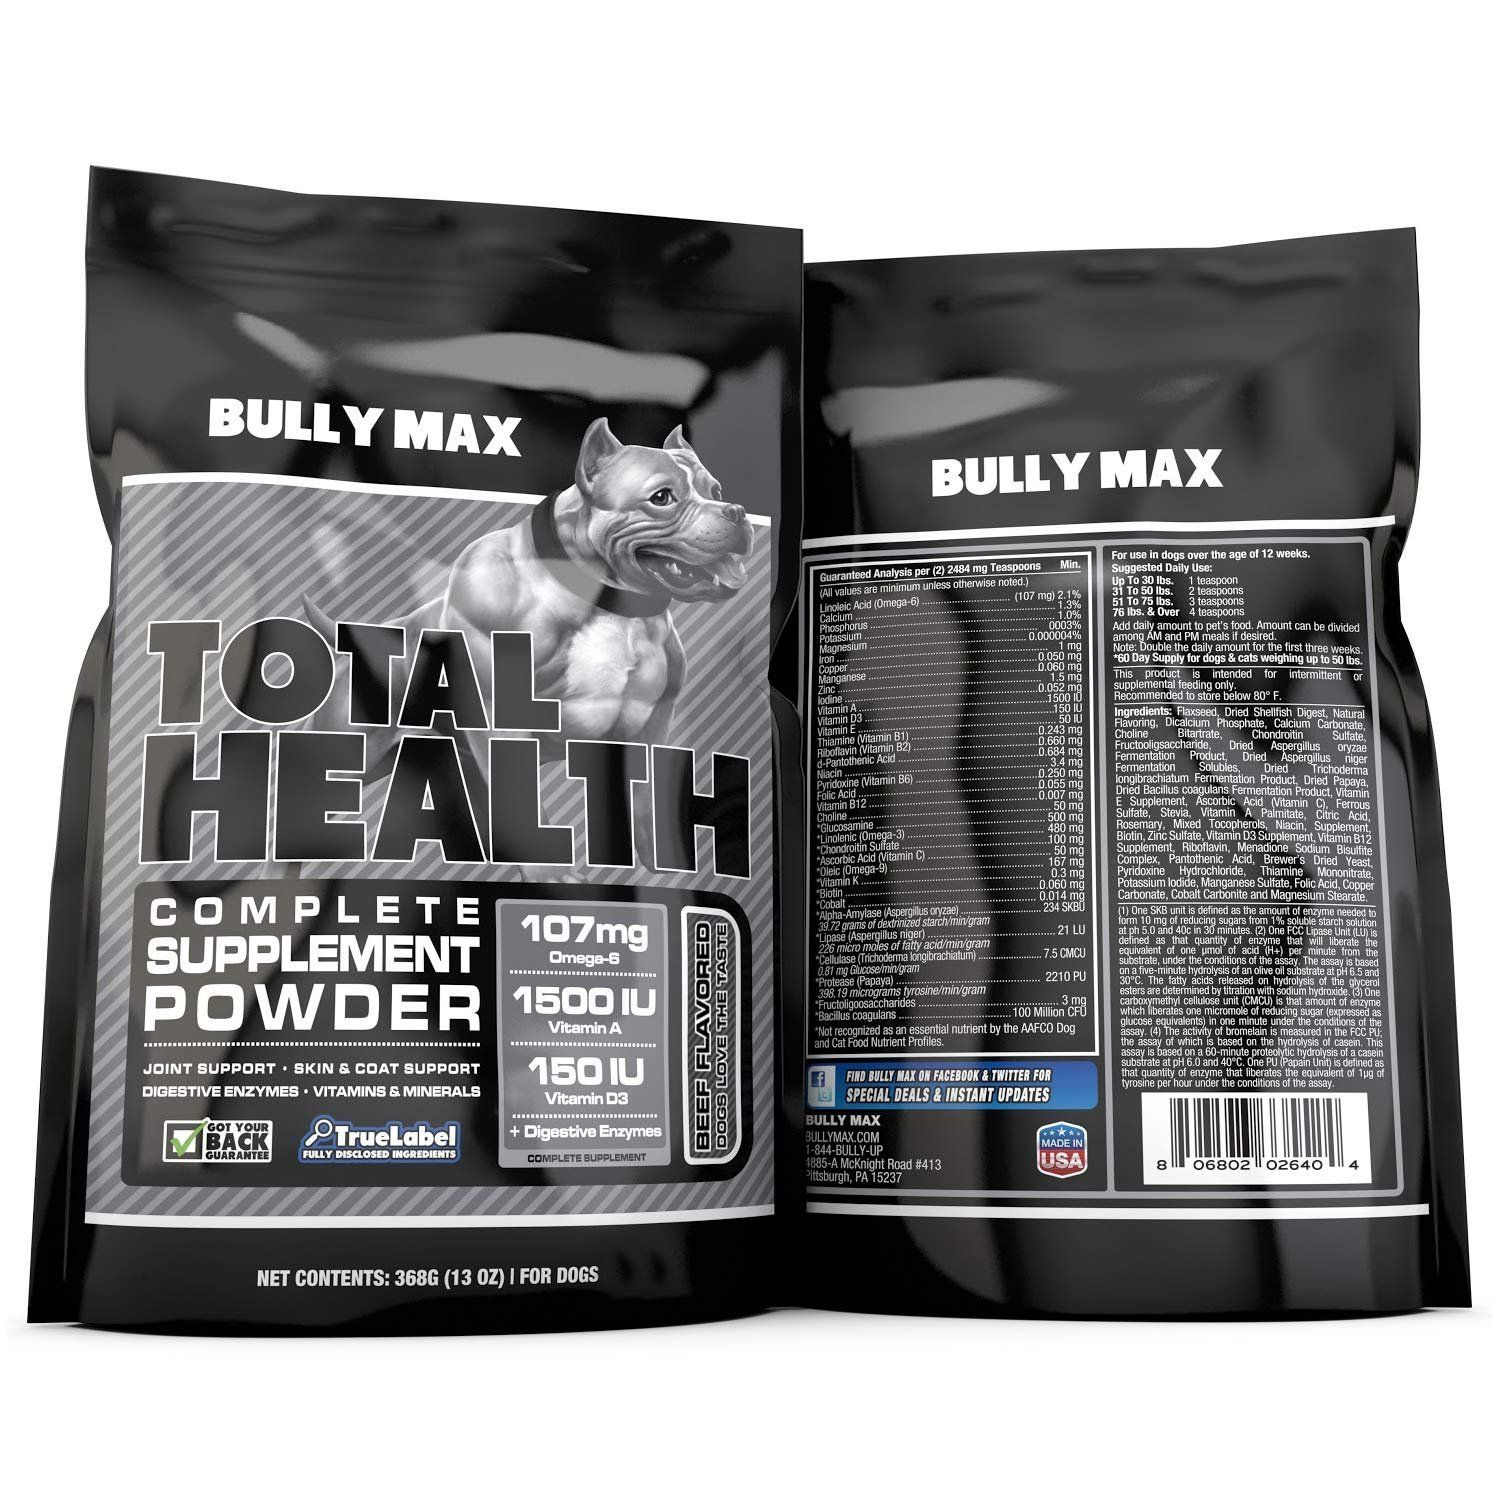 Bully max total health supplement 60 day supply